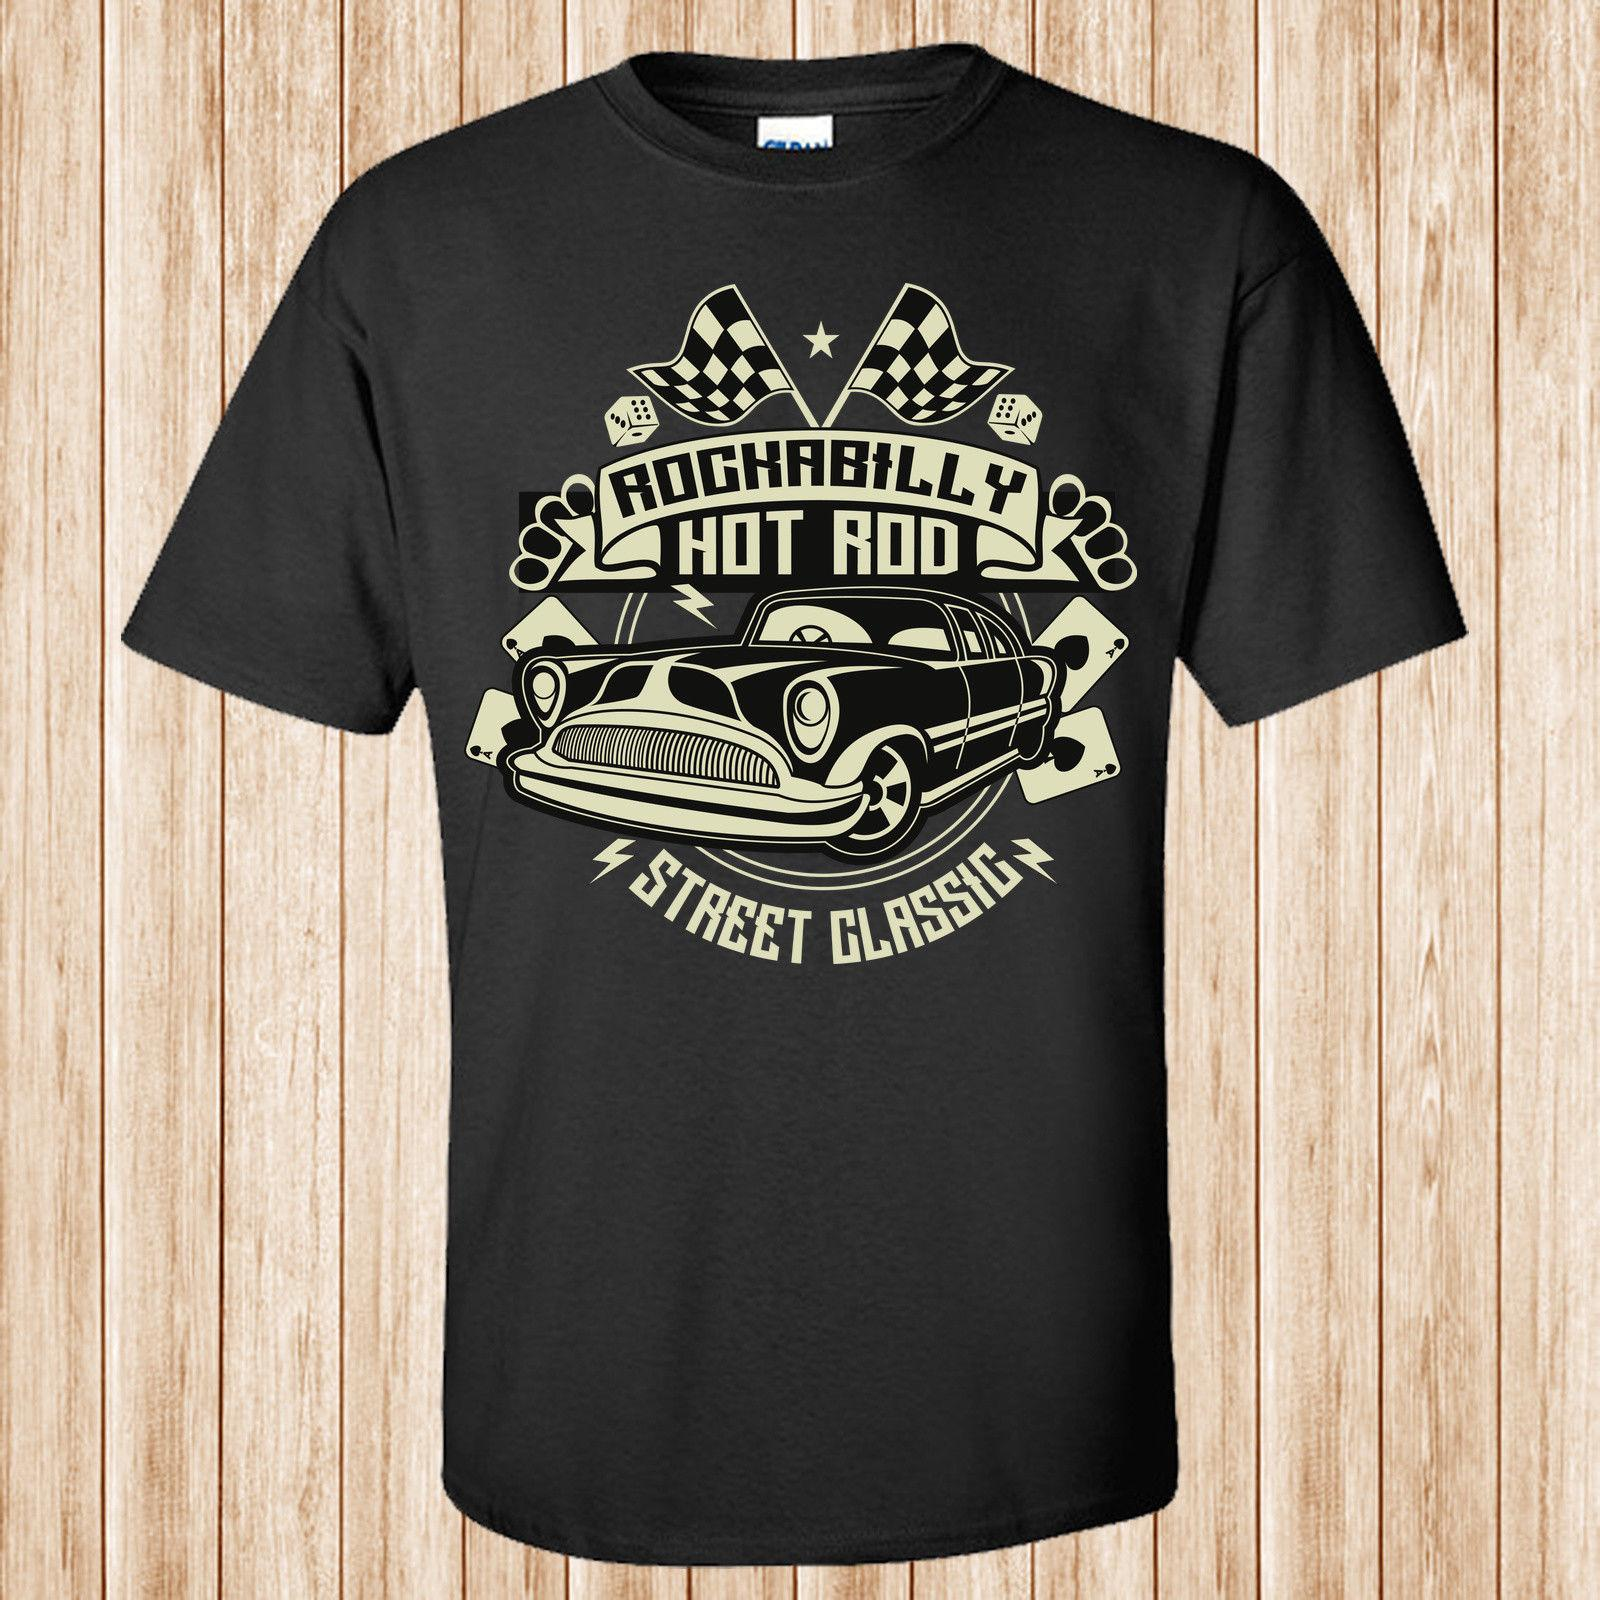 efa731138 Mens T Shirts Summer Hipster Rockabilly Hotrod T Shirt Shirt With T Shirt  Buy Funny T Shirts Online From Lovetshirts29, $11.17| DHgate.Com